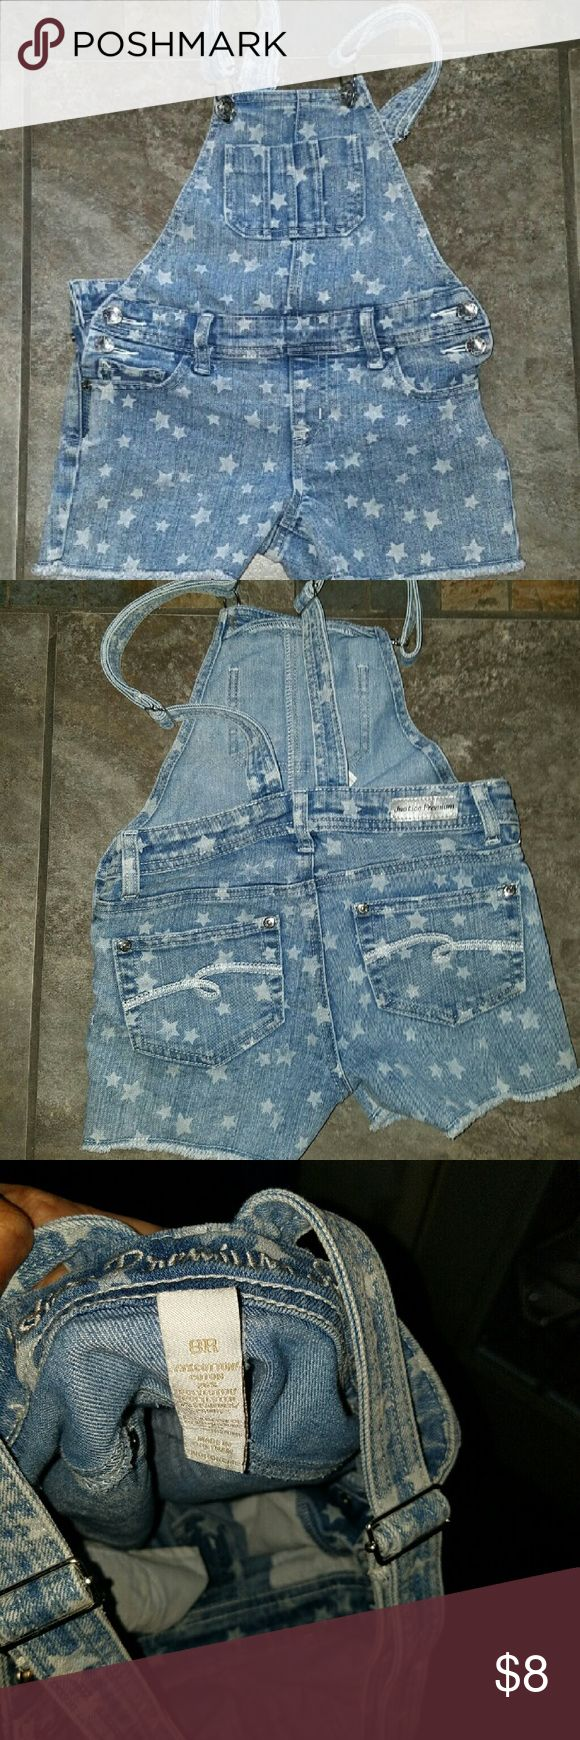 Little girls jean jumper Jean jumper with stars pattern. No stains or tears. Justice Bottoms Jumpsuits & Rompers